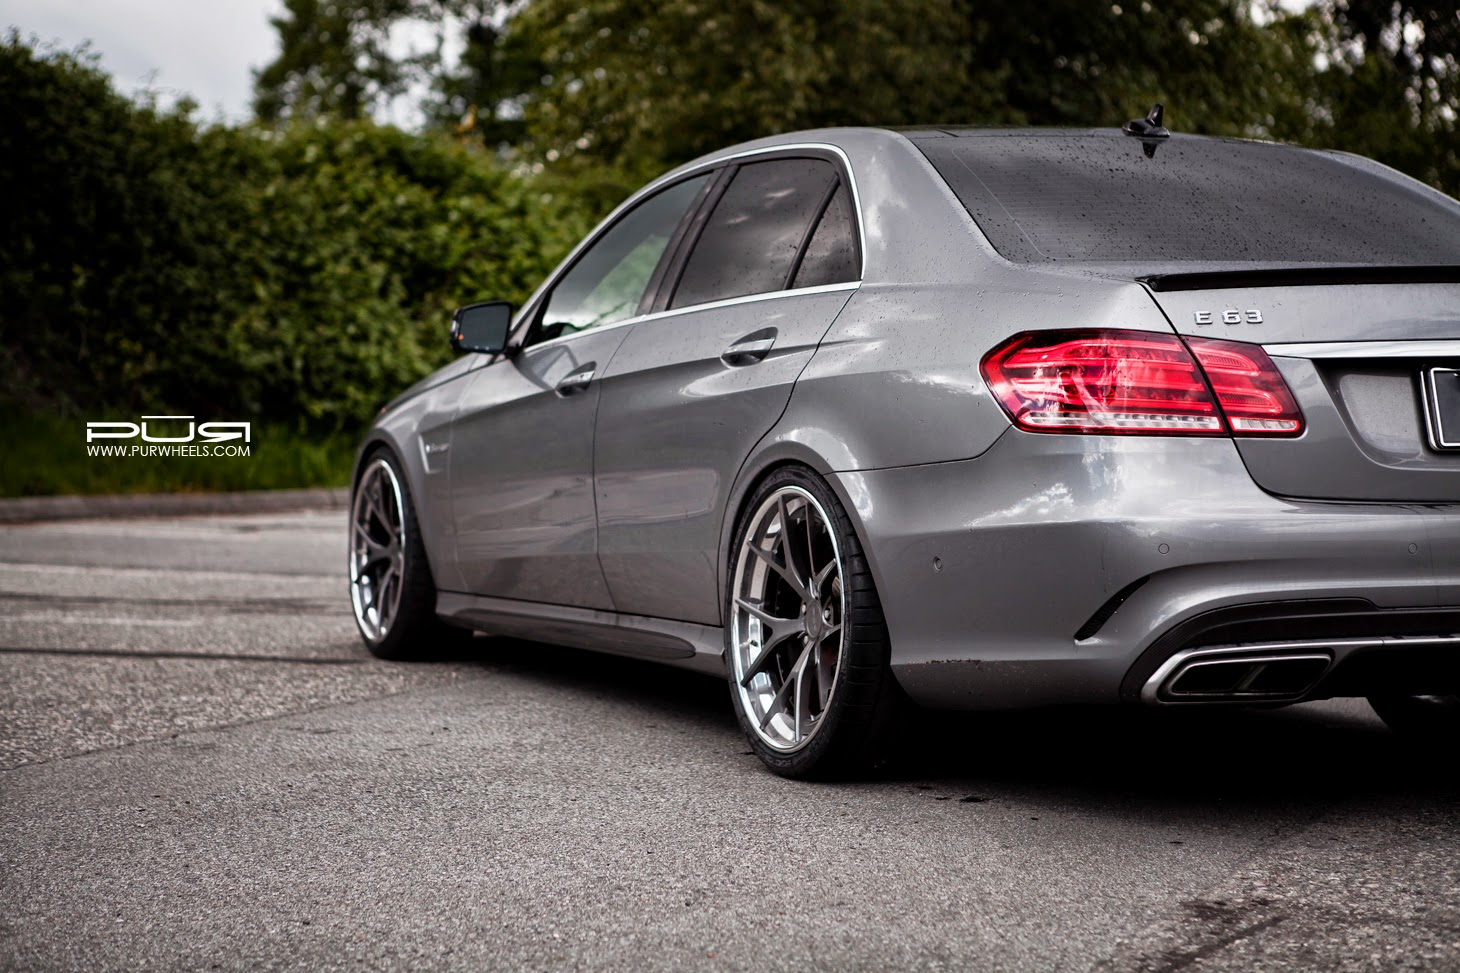 Mercedes benz w212 e63 amg facelift on pur wheels benztuning for Mercedes benz e class e63 amg